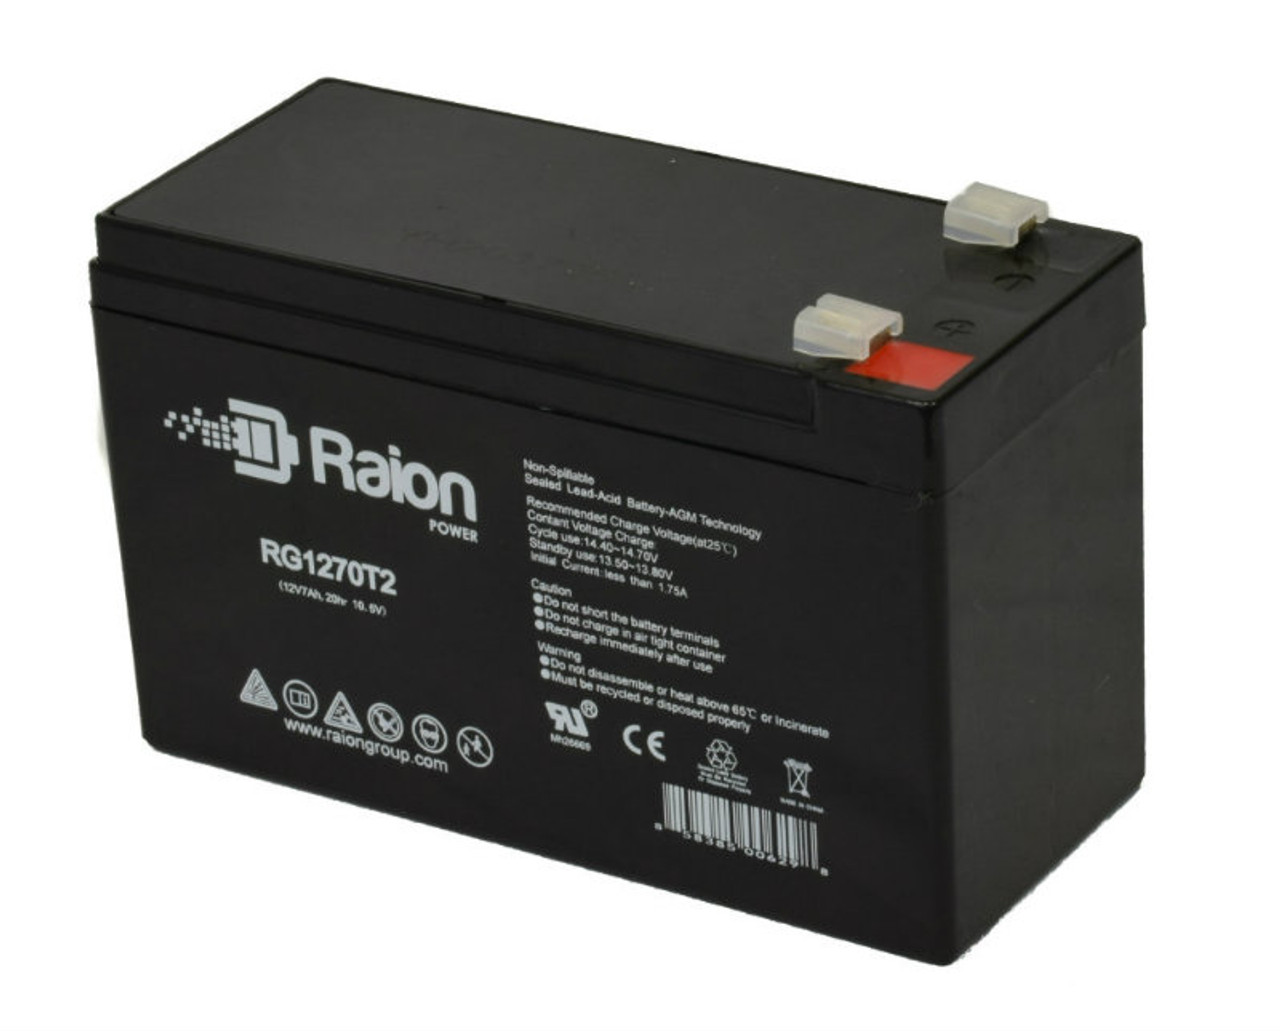 Raion Power RG1270T1 Replacement Battery for Leoch Battery DJW12-7.0